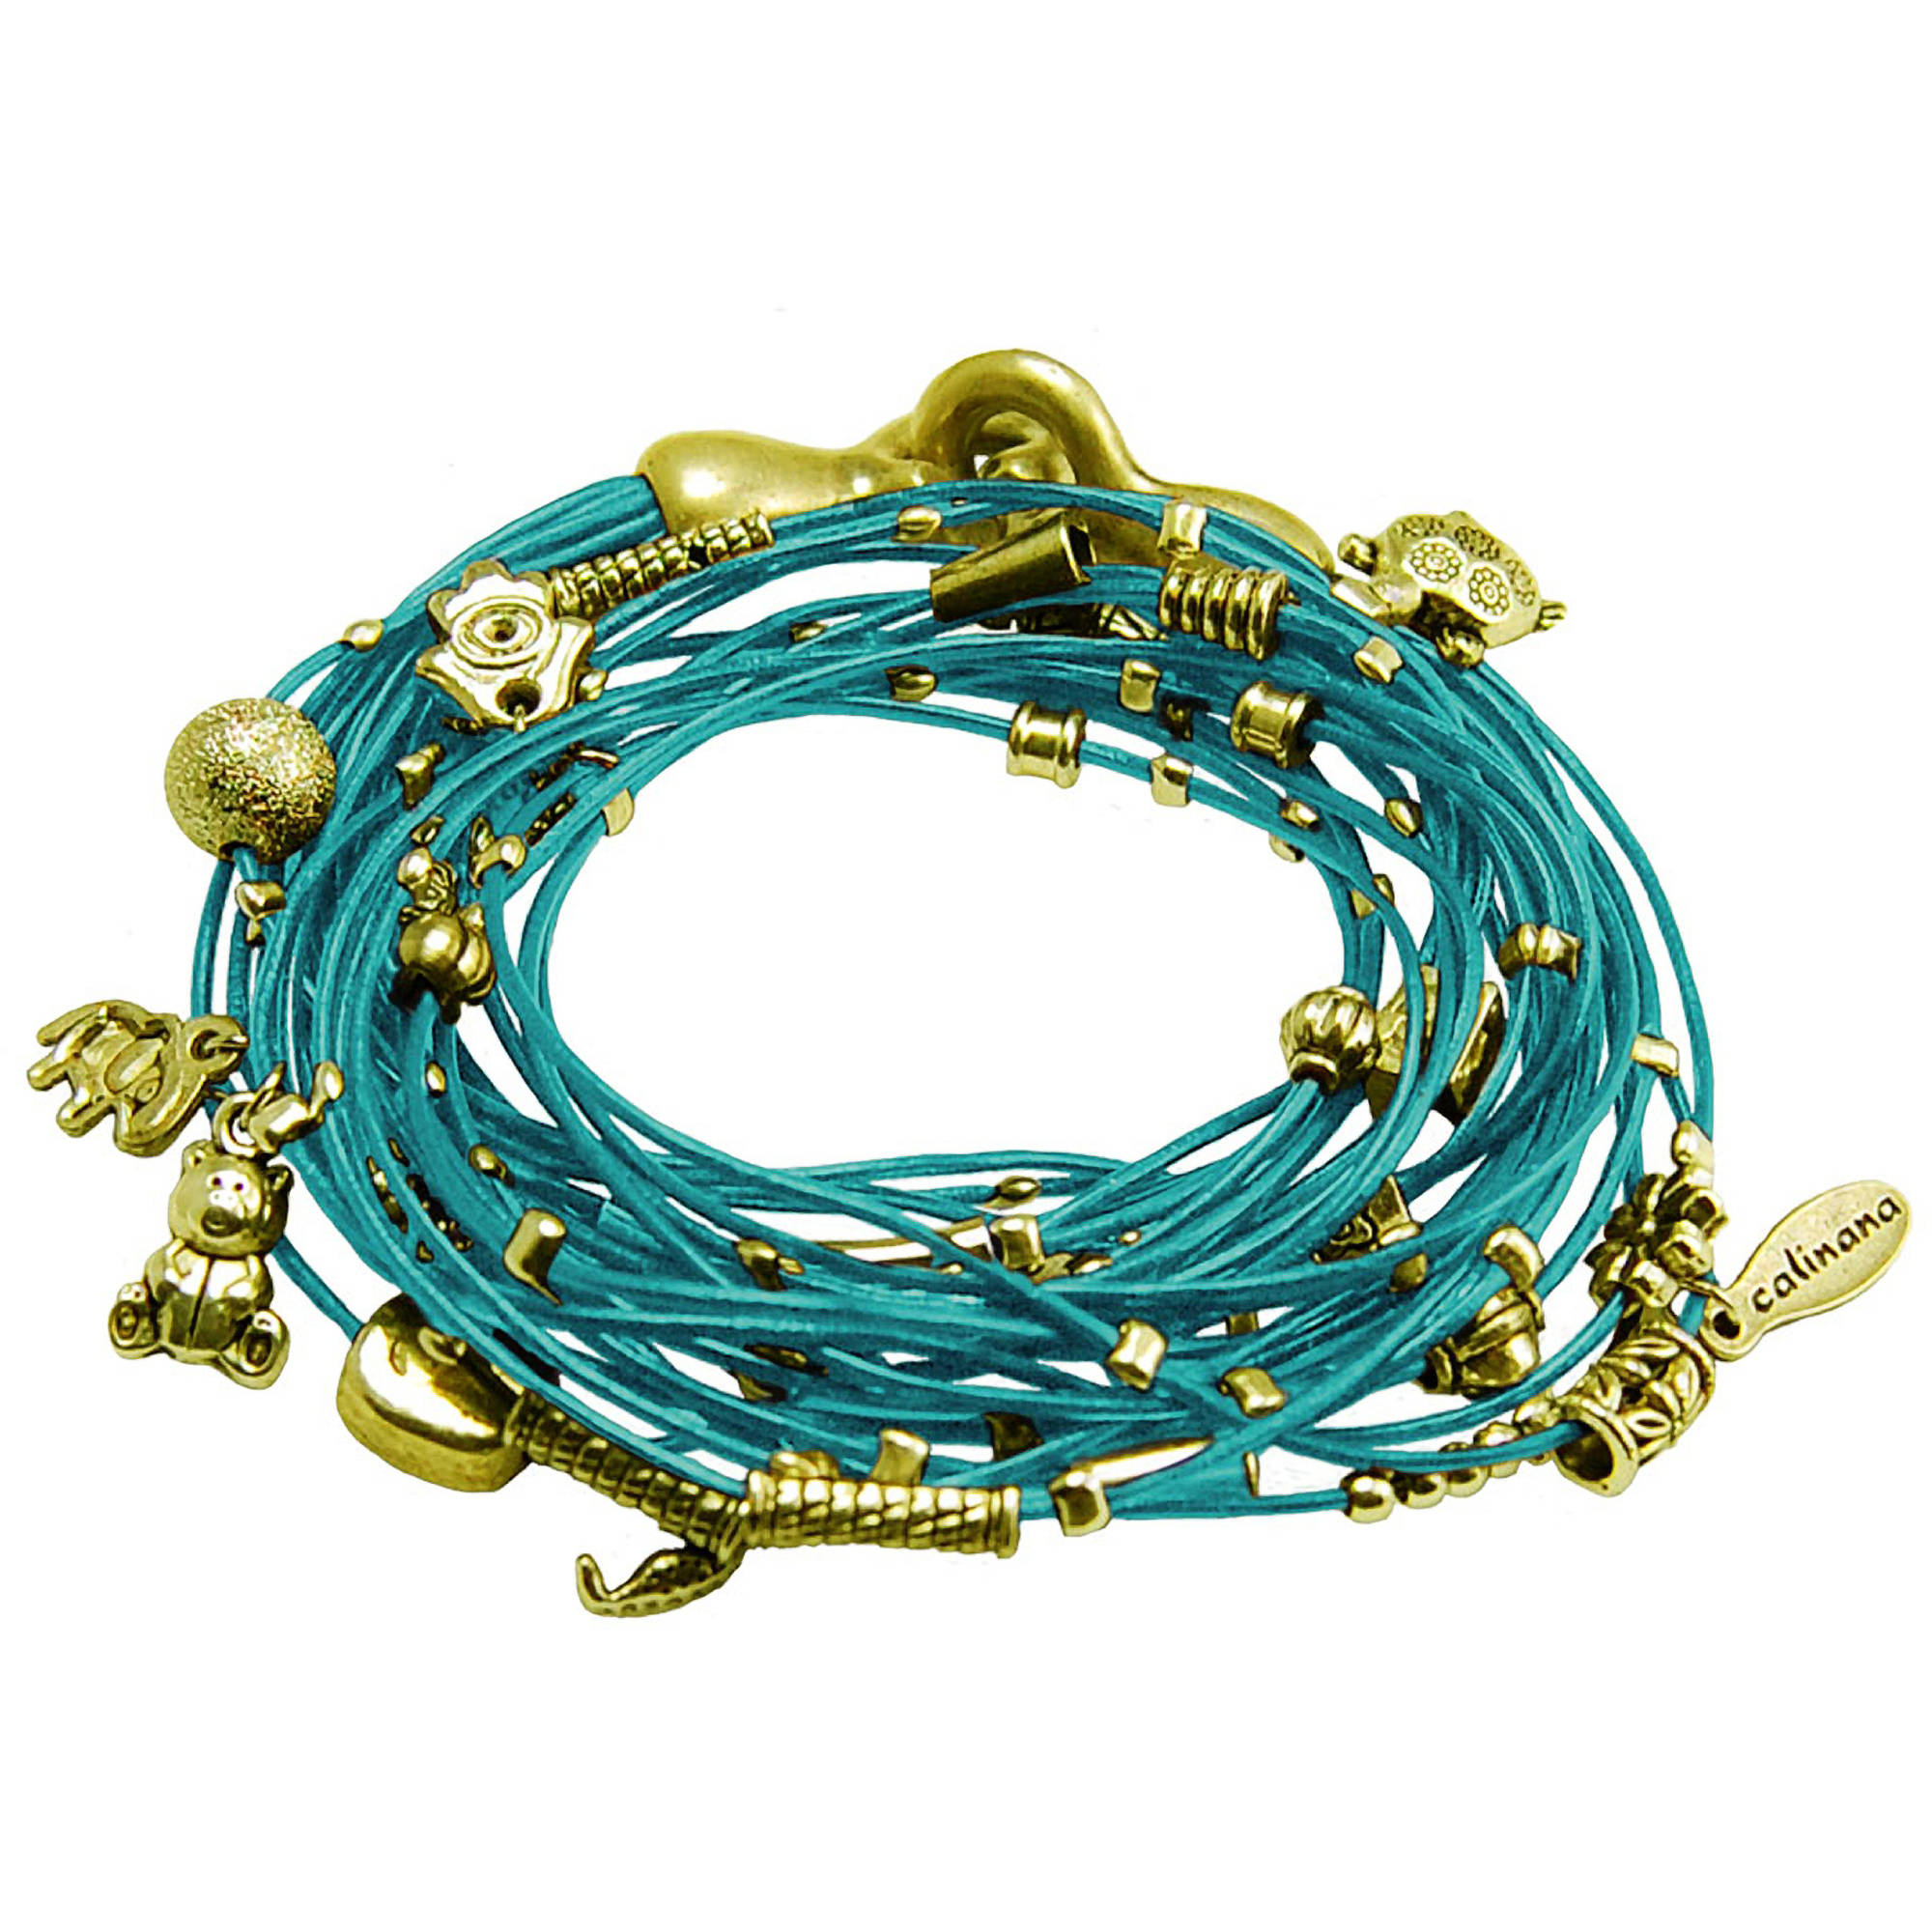 Miss Zoe by Calinana Multi Cord Necklace, Bracelet with Charms, Turquoise/Gold